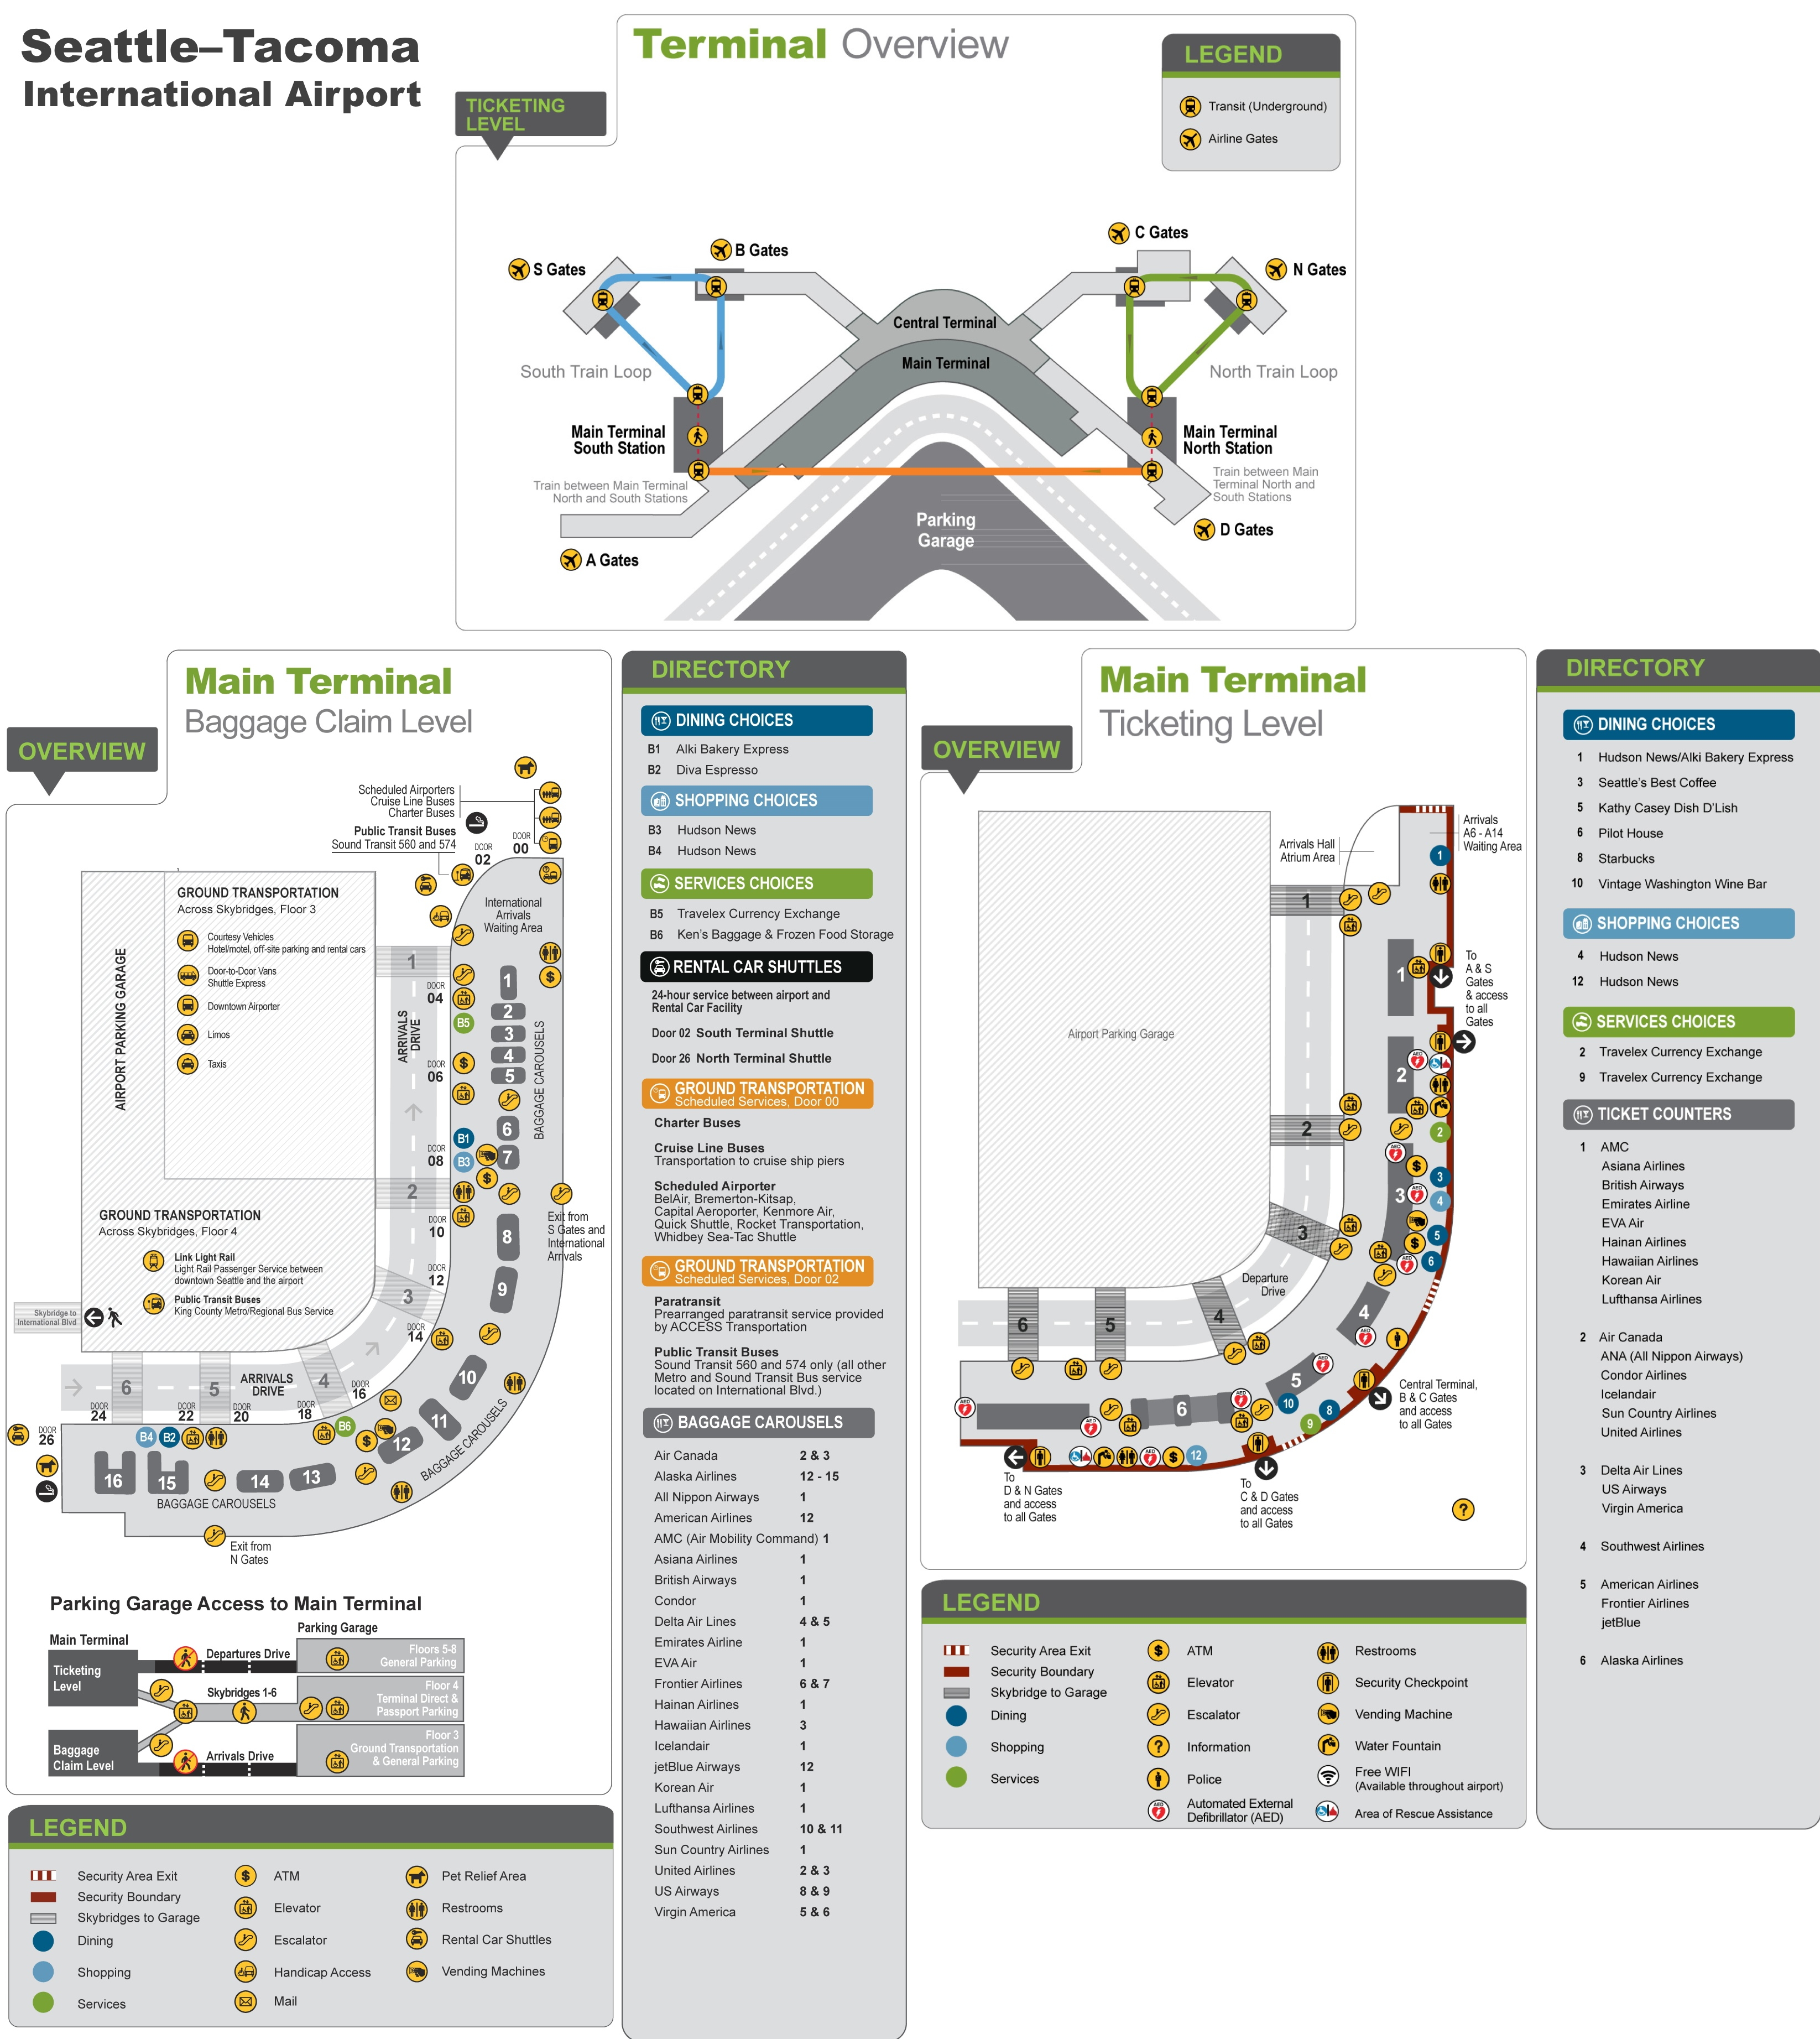 Seattle Tacoma Airport Map Seattle Tacoma International Airport map